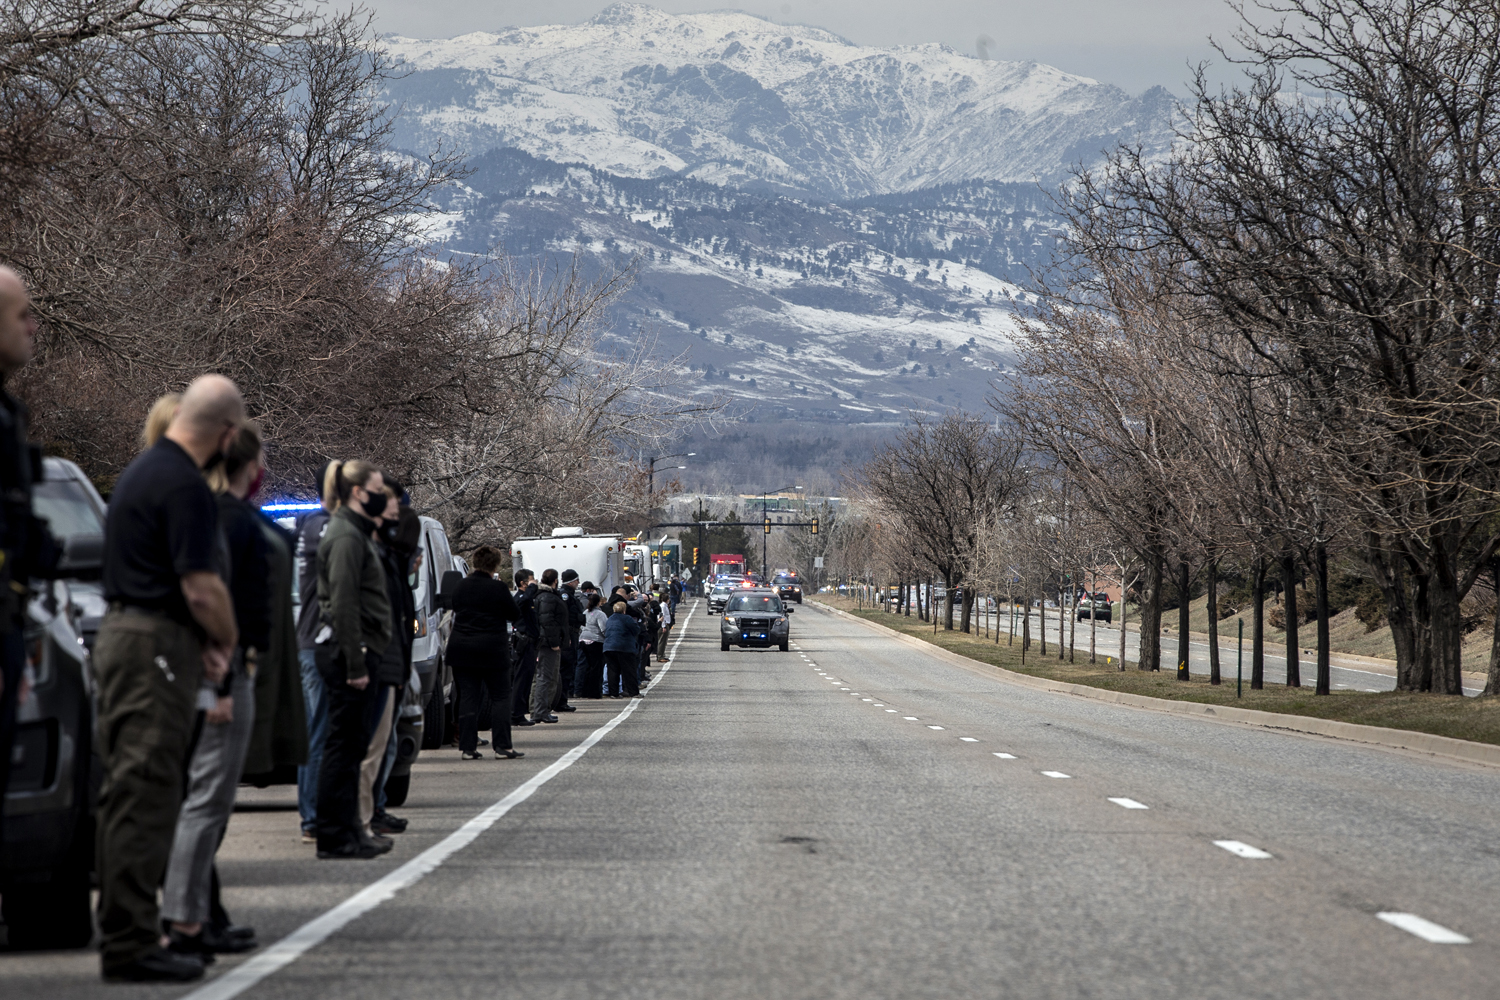 Law enforcement vehicles escort the body of slain Boulder Police Officer Eric Talley